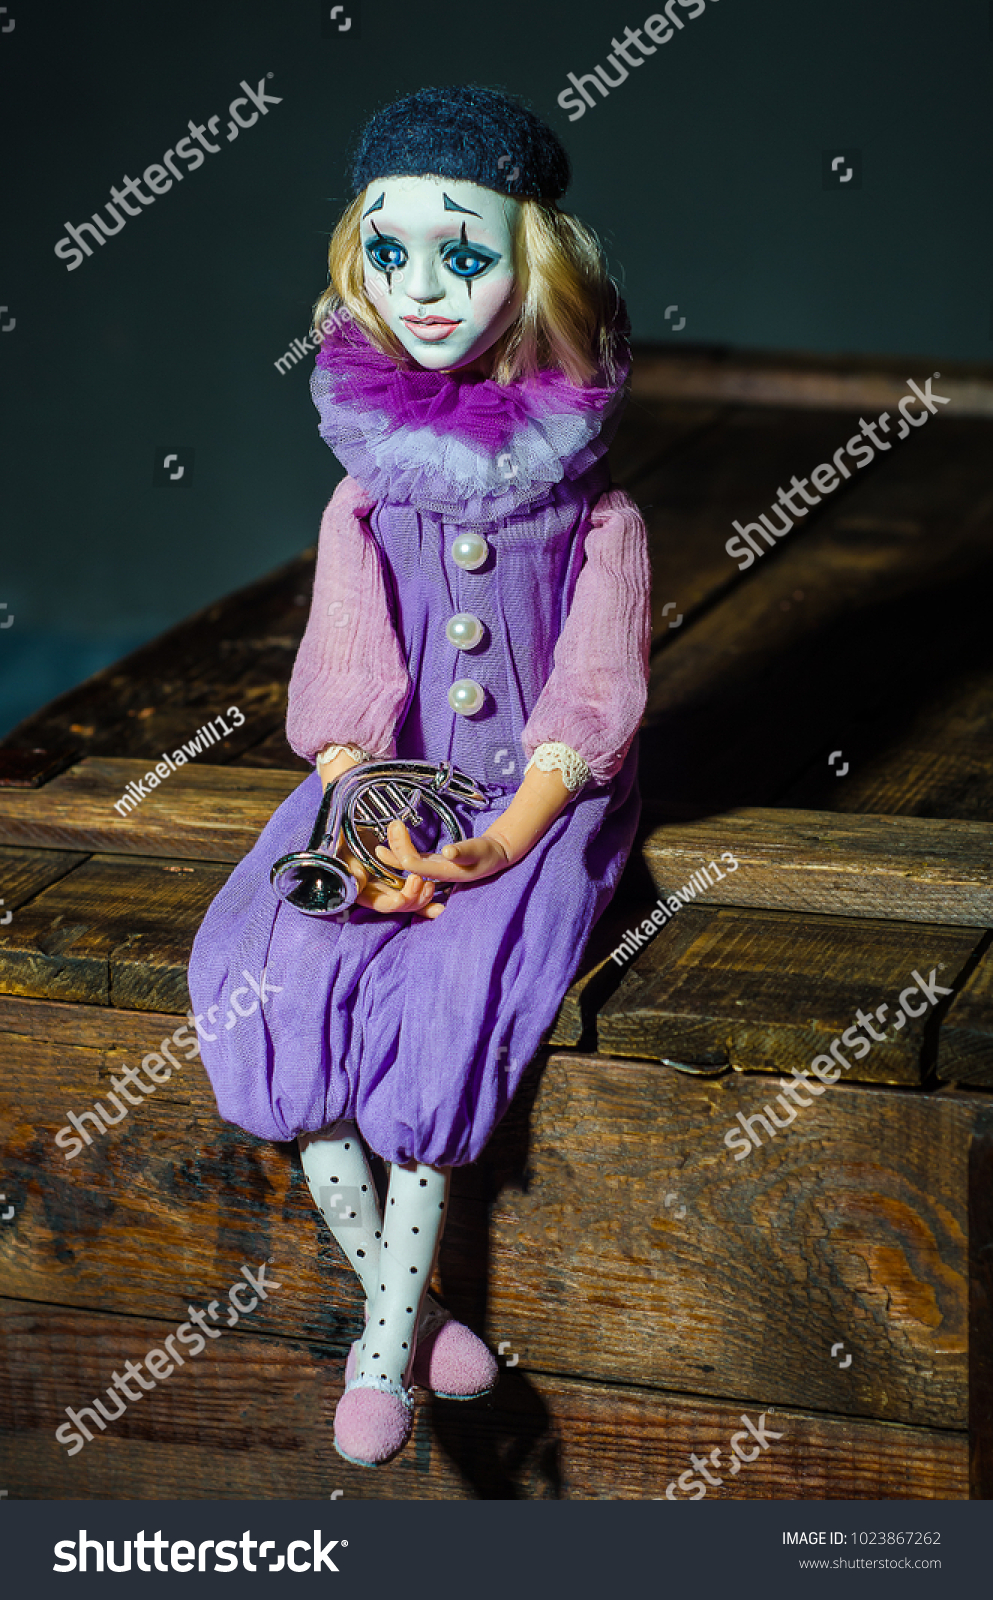 Halloween Cosplay 2020 Piero Piero Textile Doll Circus Toy Plastic | Objects Stock Image 1023867262